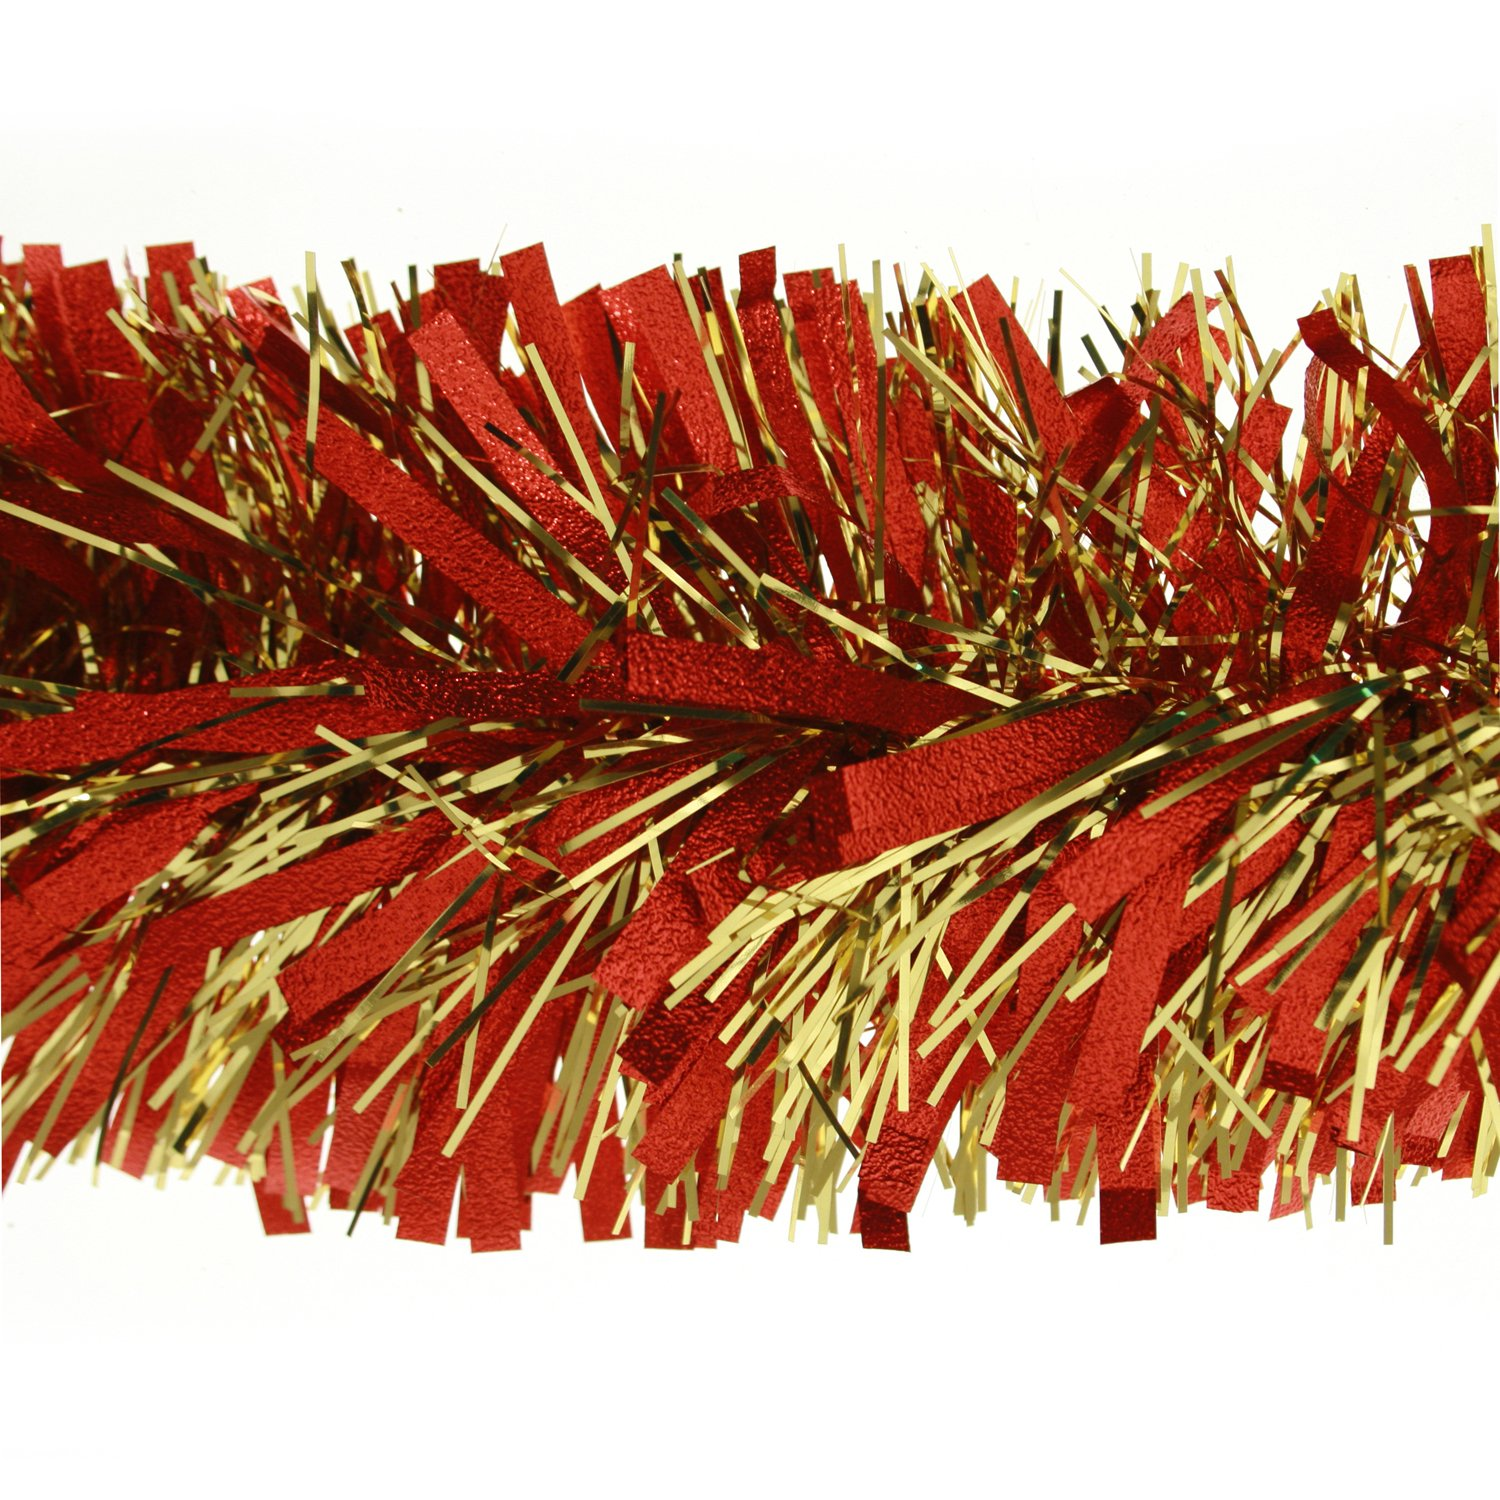 2m (6.5ft) Deluxe Thick Chunky Wide Red & Gold Shiny Christmas Tree Tinsel Garland with Embossing WeRChristmas